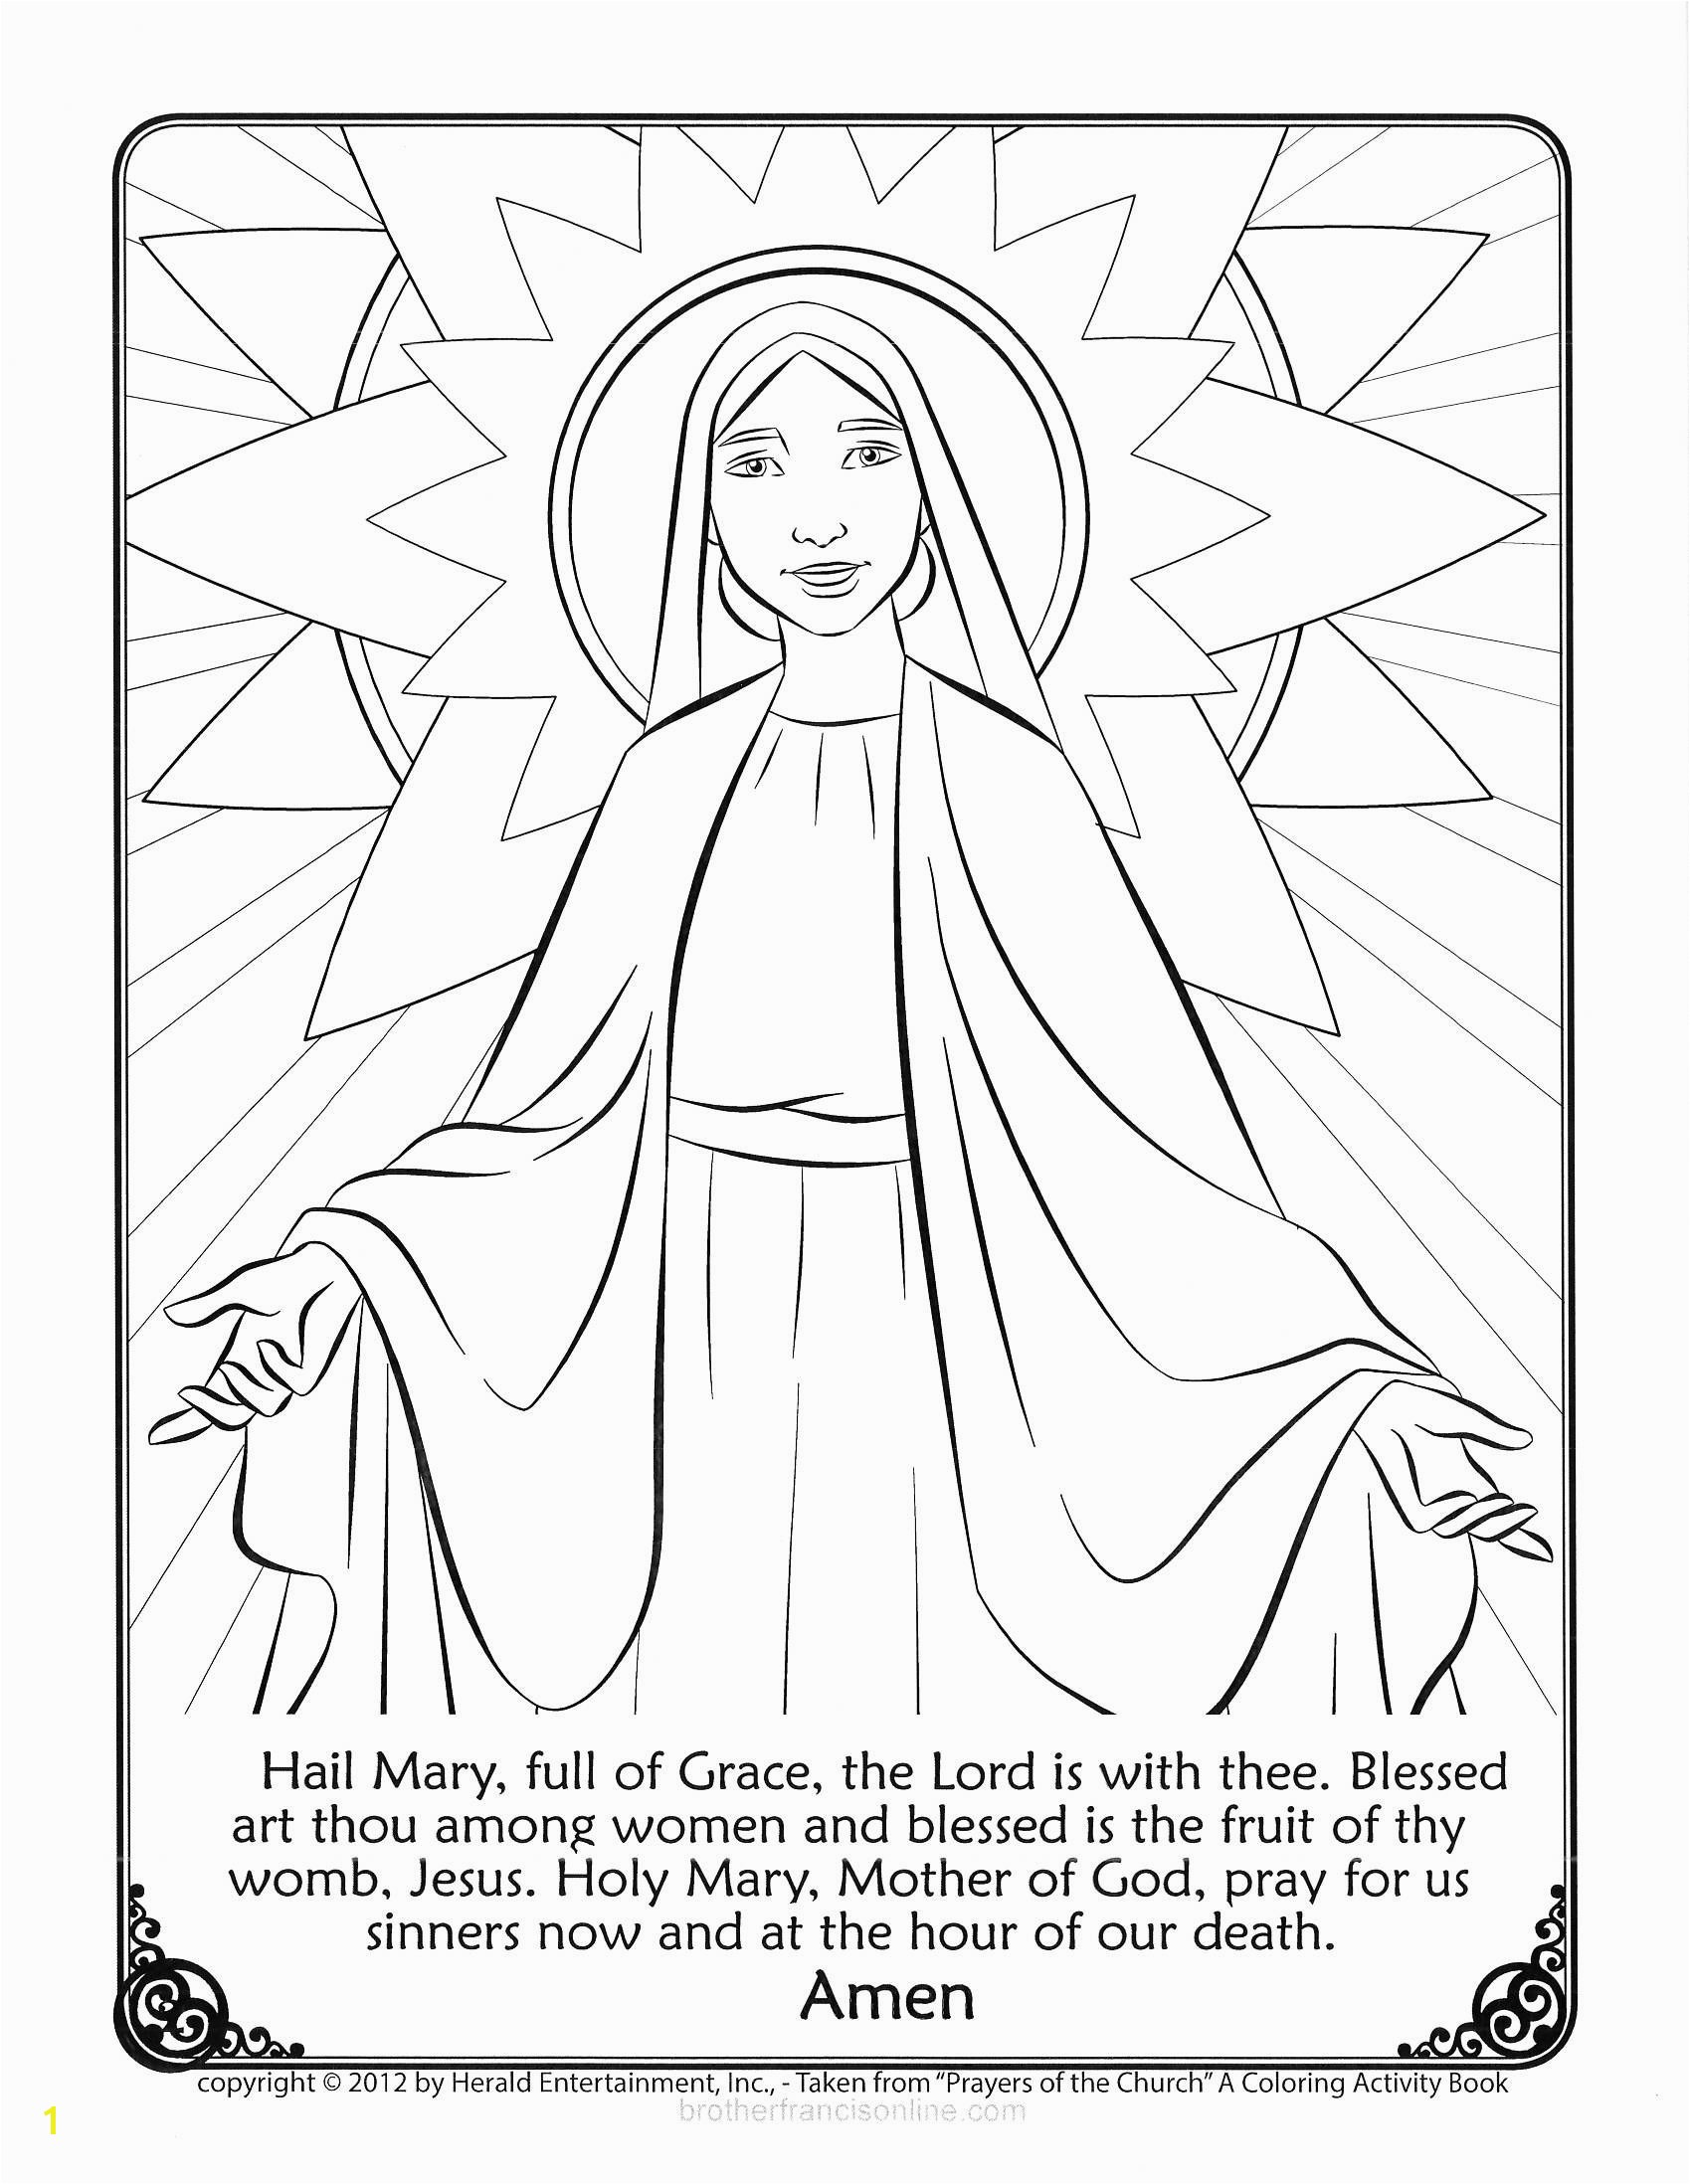 hail mary coloring sheet mary coloring page with the hail mary prayer printed below color and pray